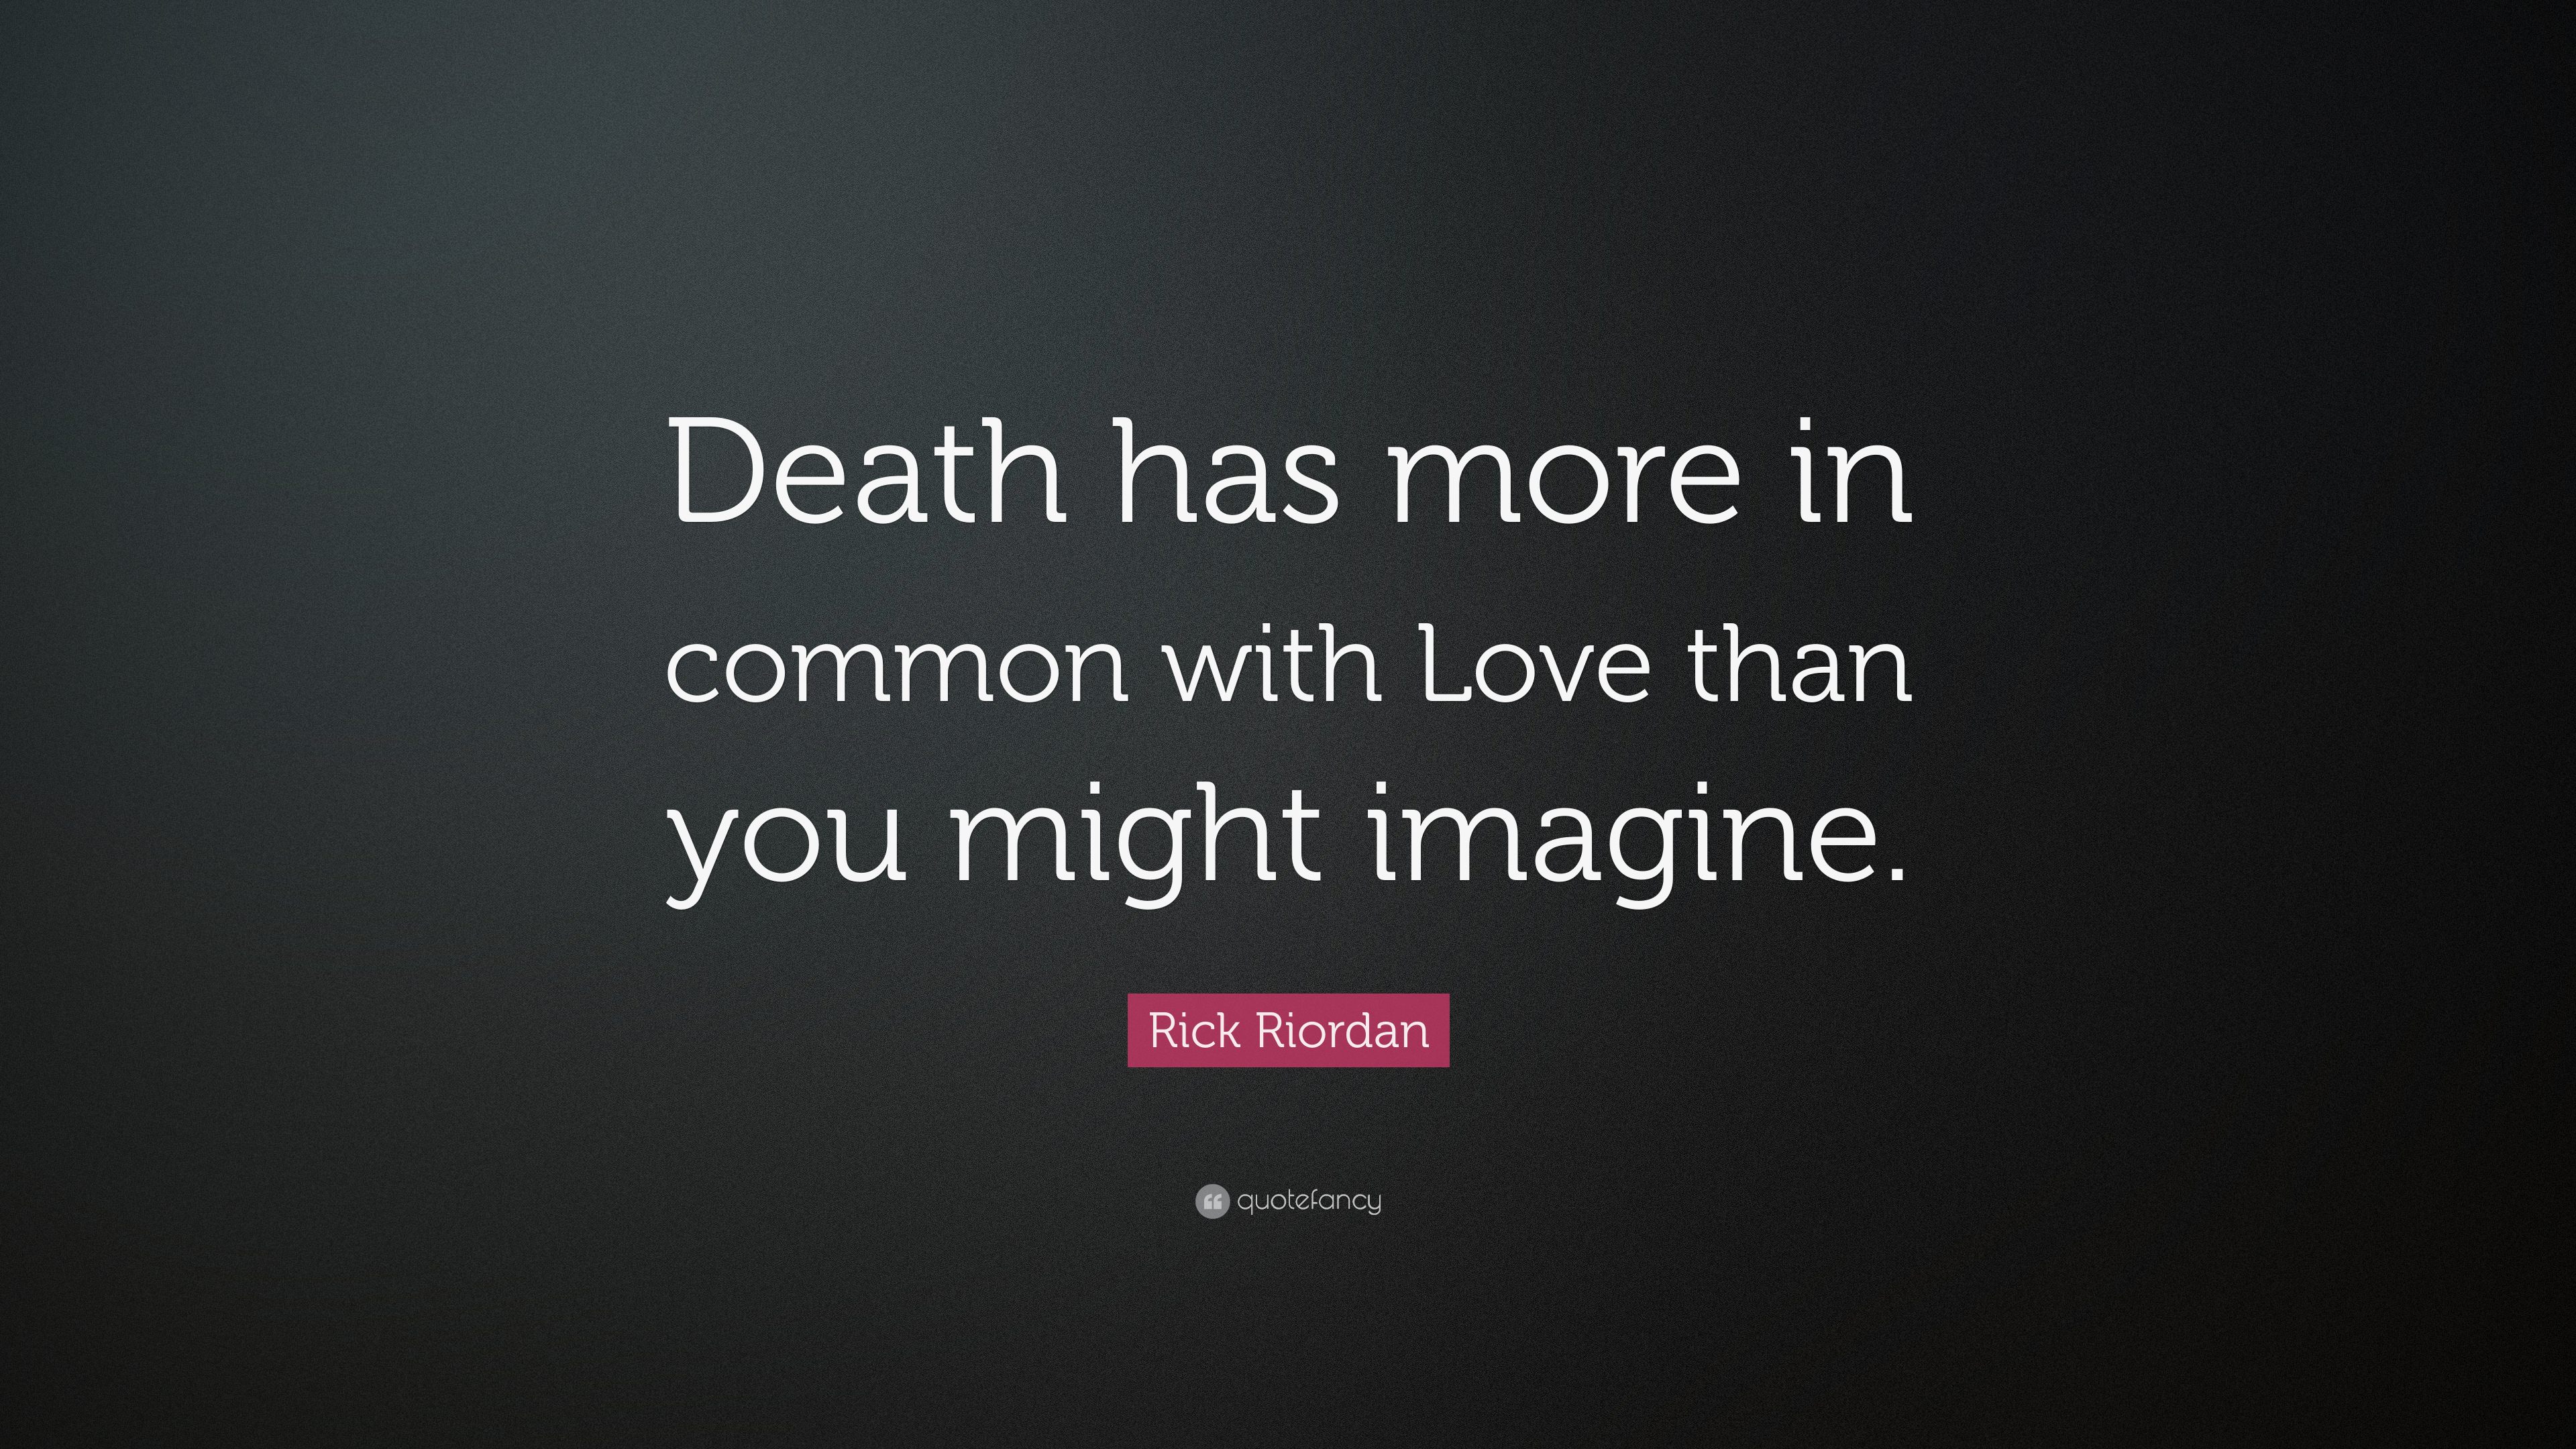 Rick Riordan Quote Death Has More In Common With Love Than You